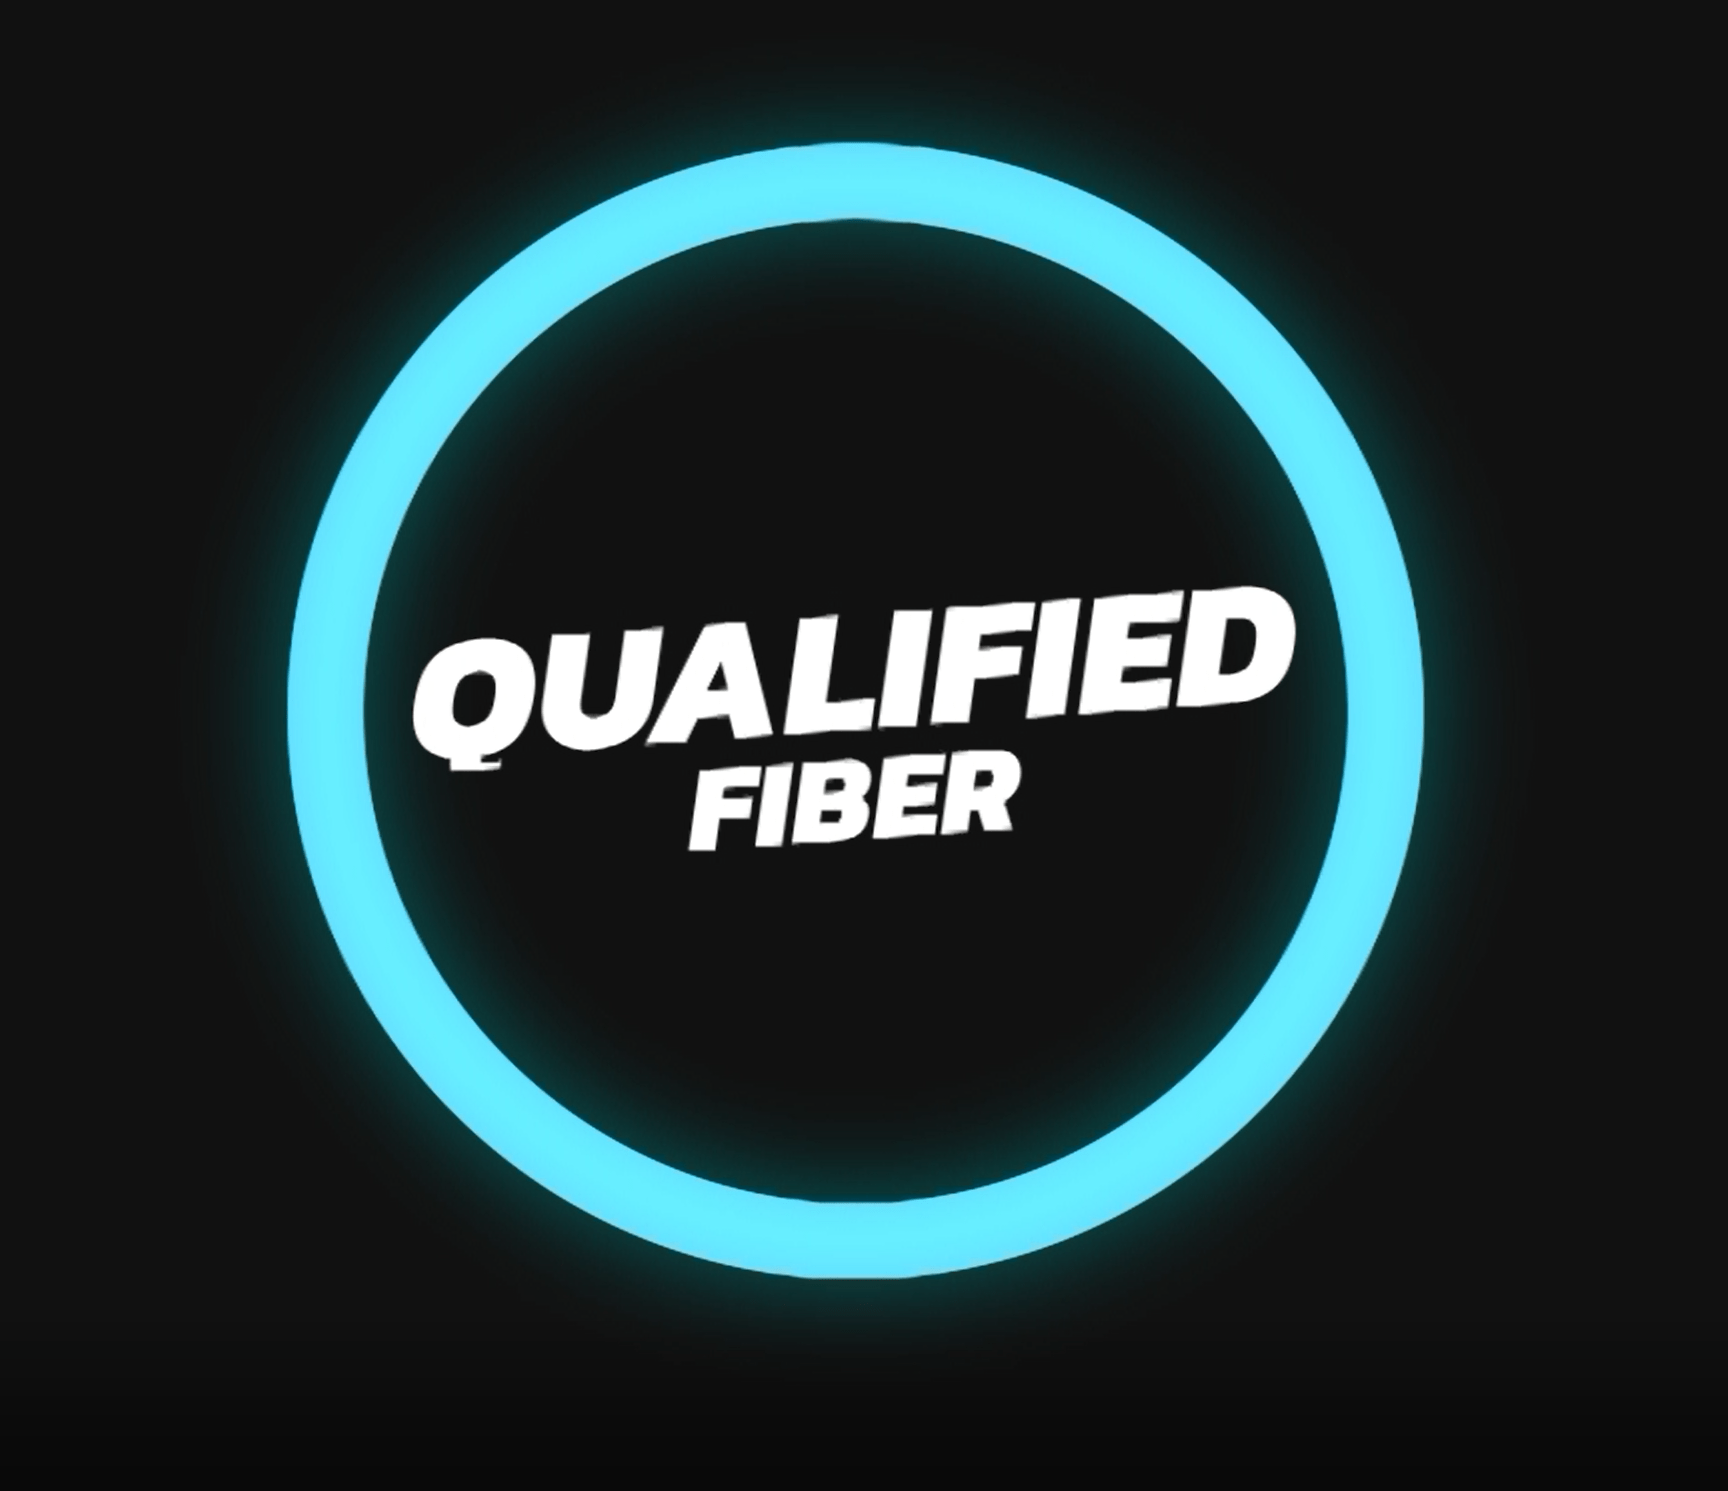 Qualified Fiber